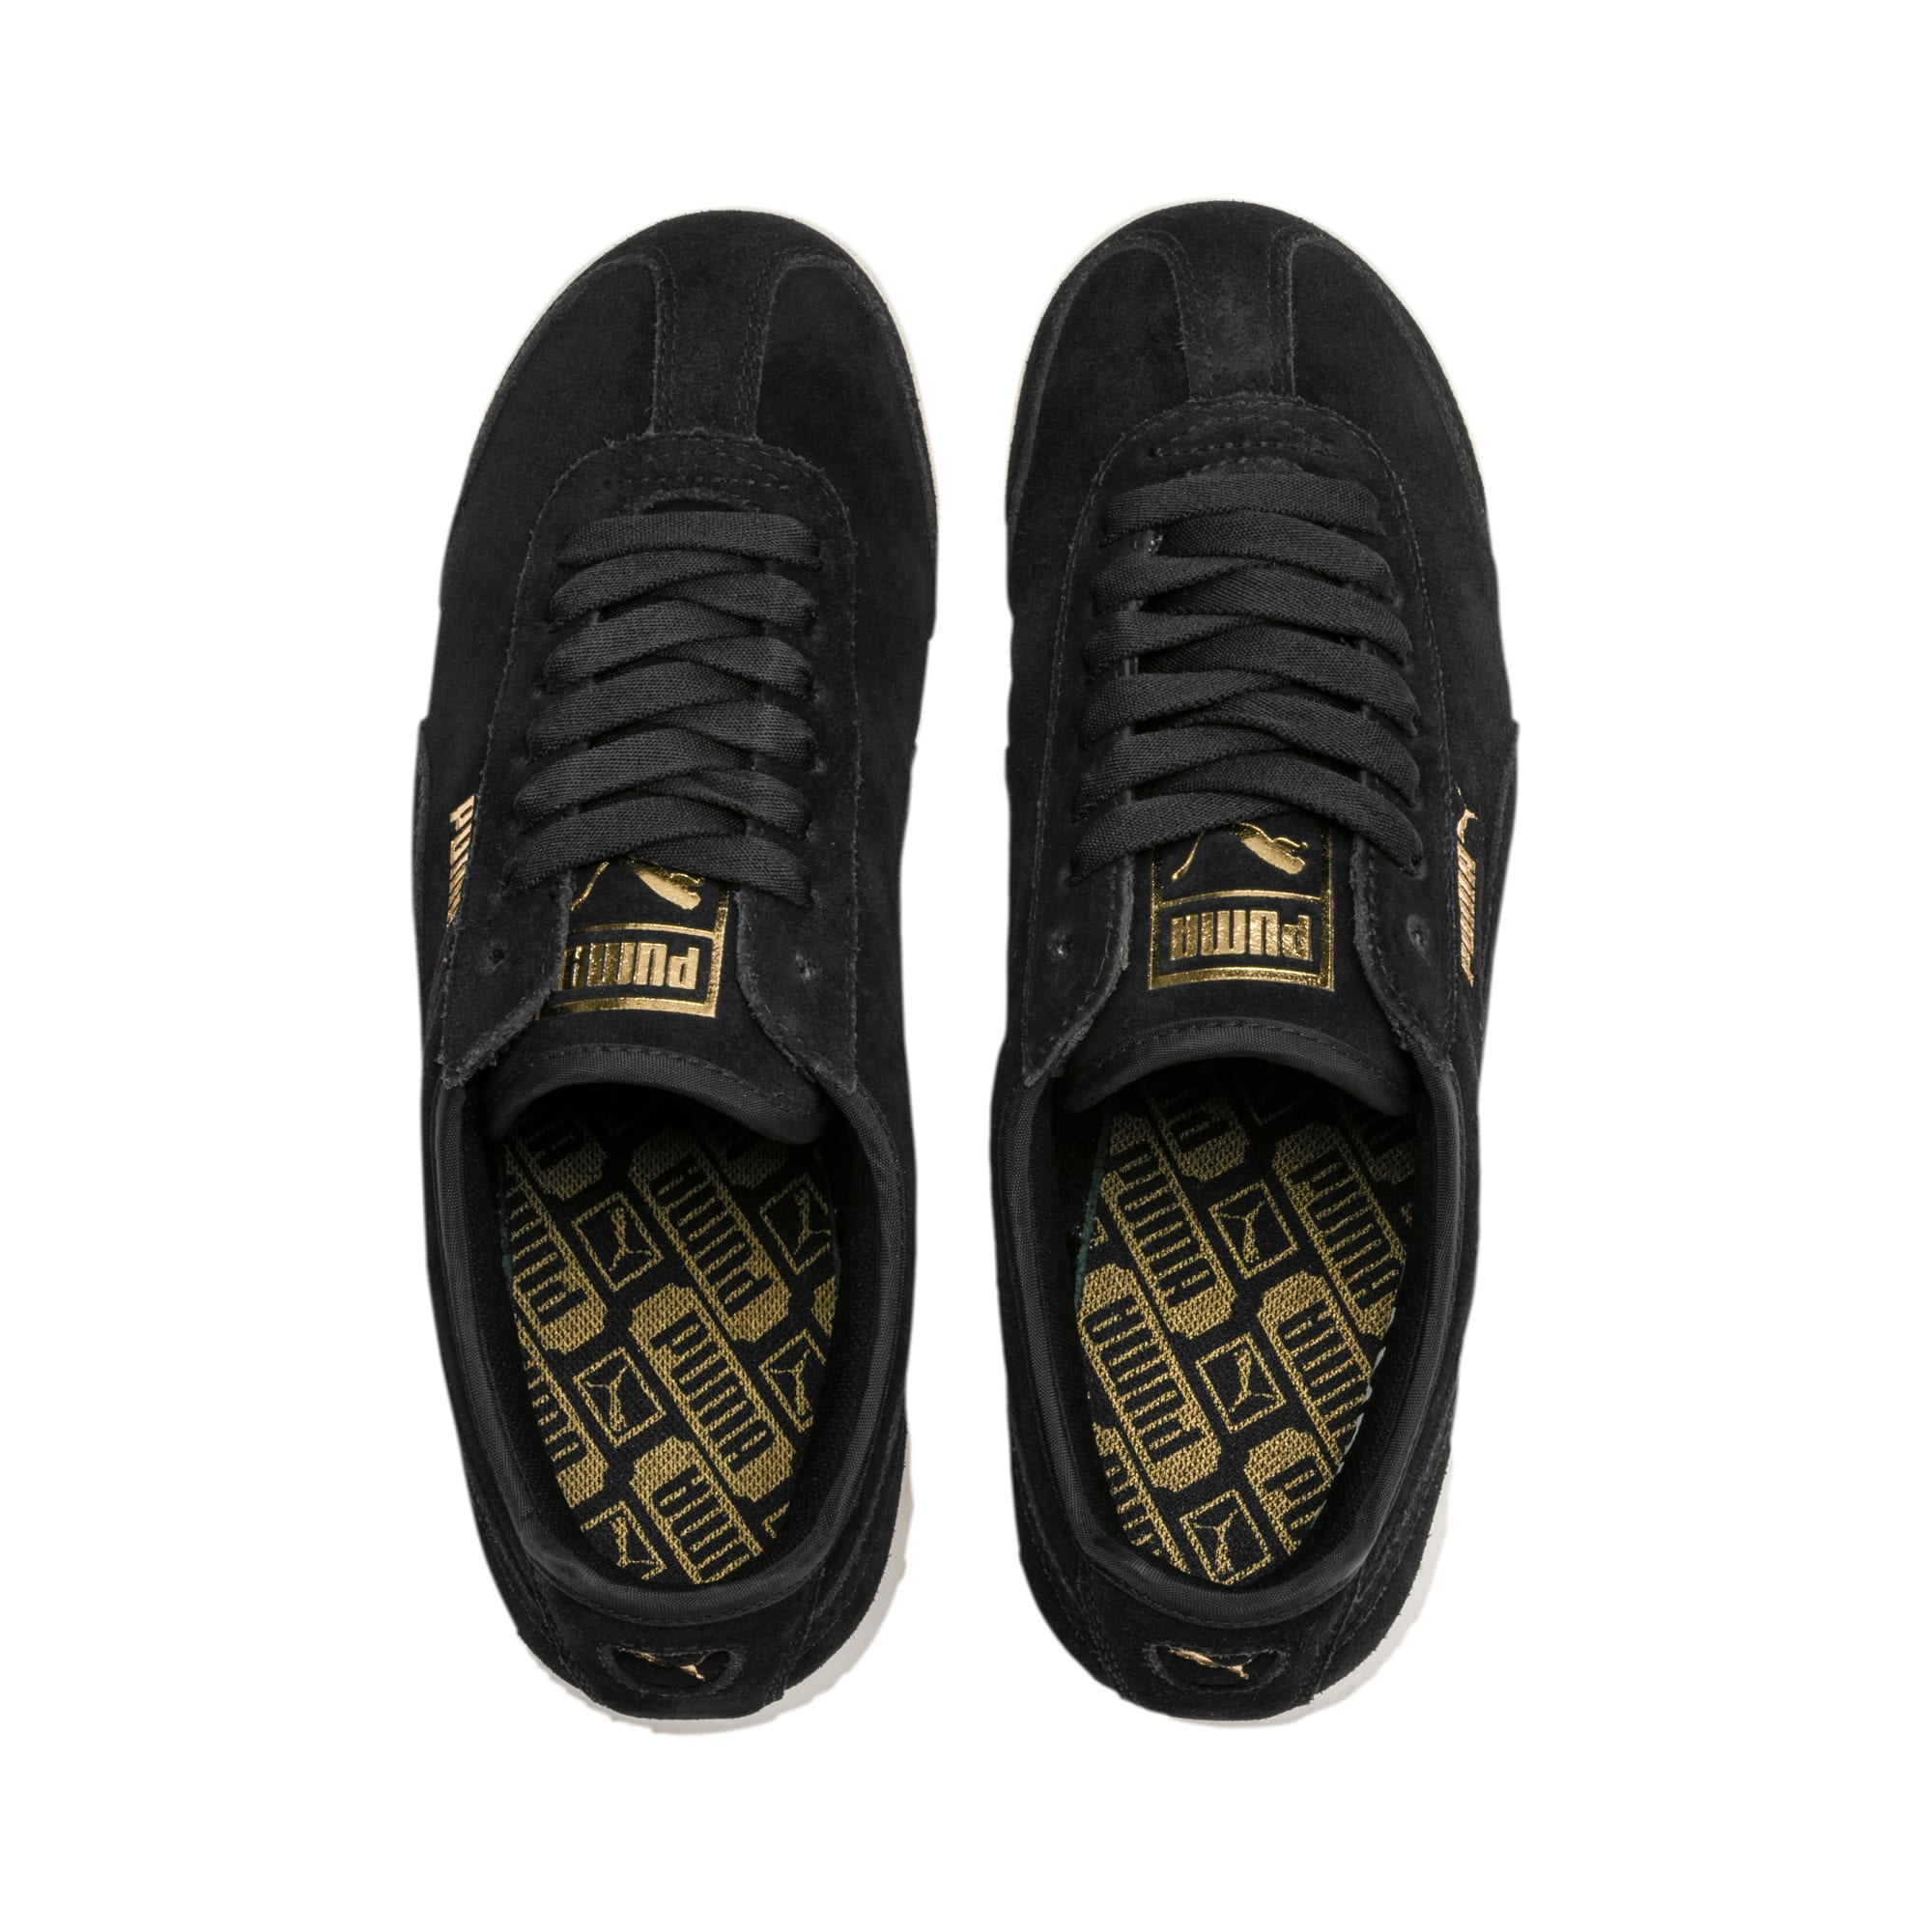 Thumbnail 7 of Roma Amor Suede Women's Sneakers, Puma Black-Puma Team Gold, medium